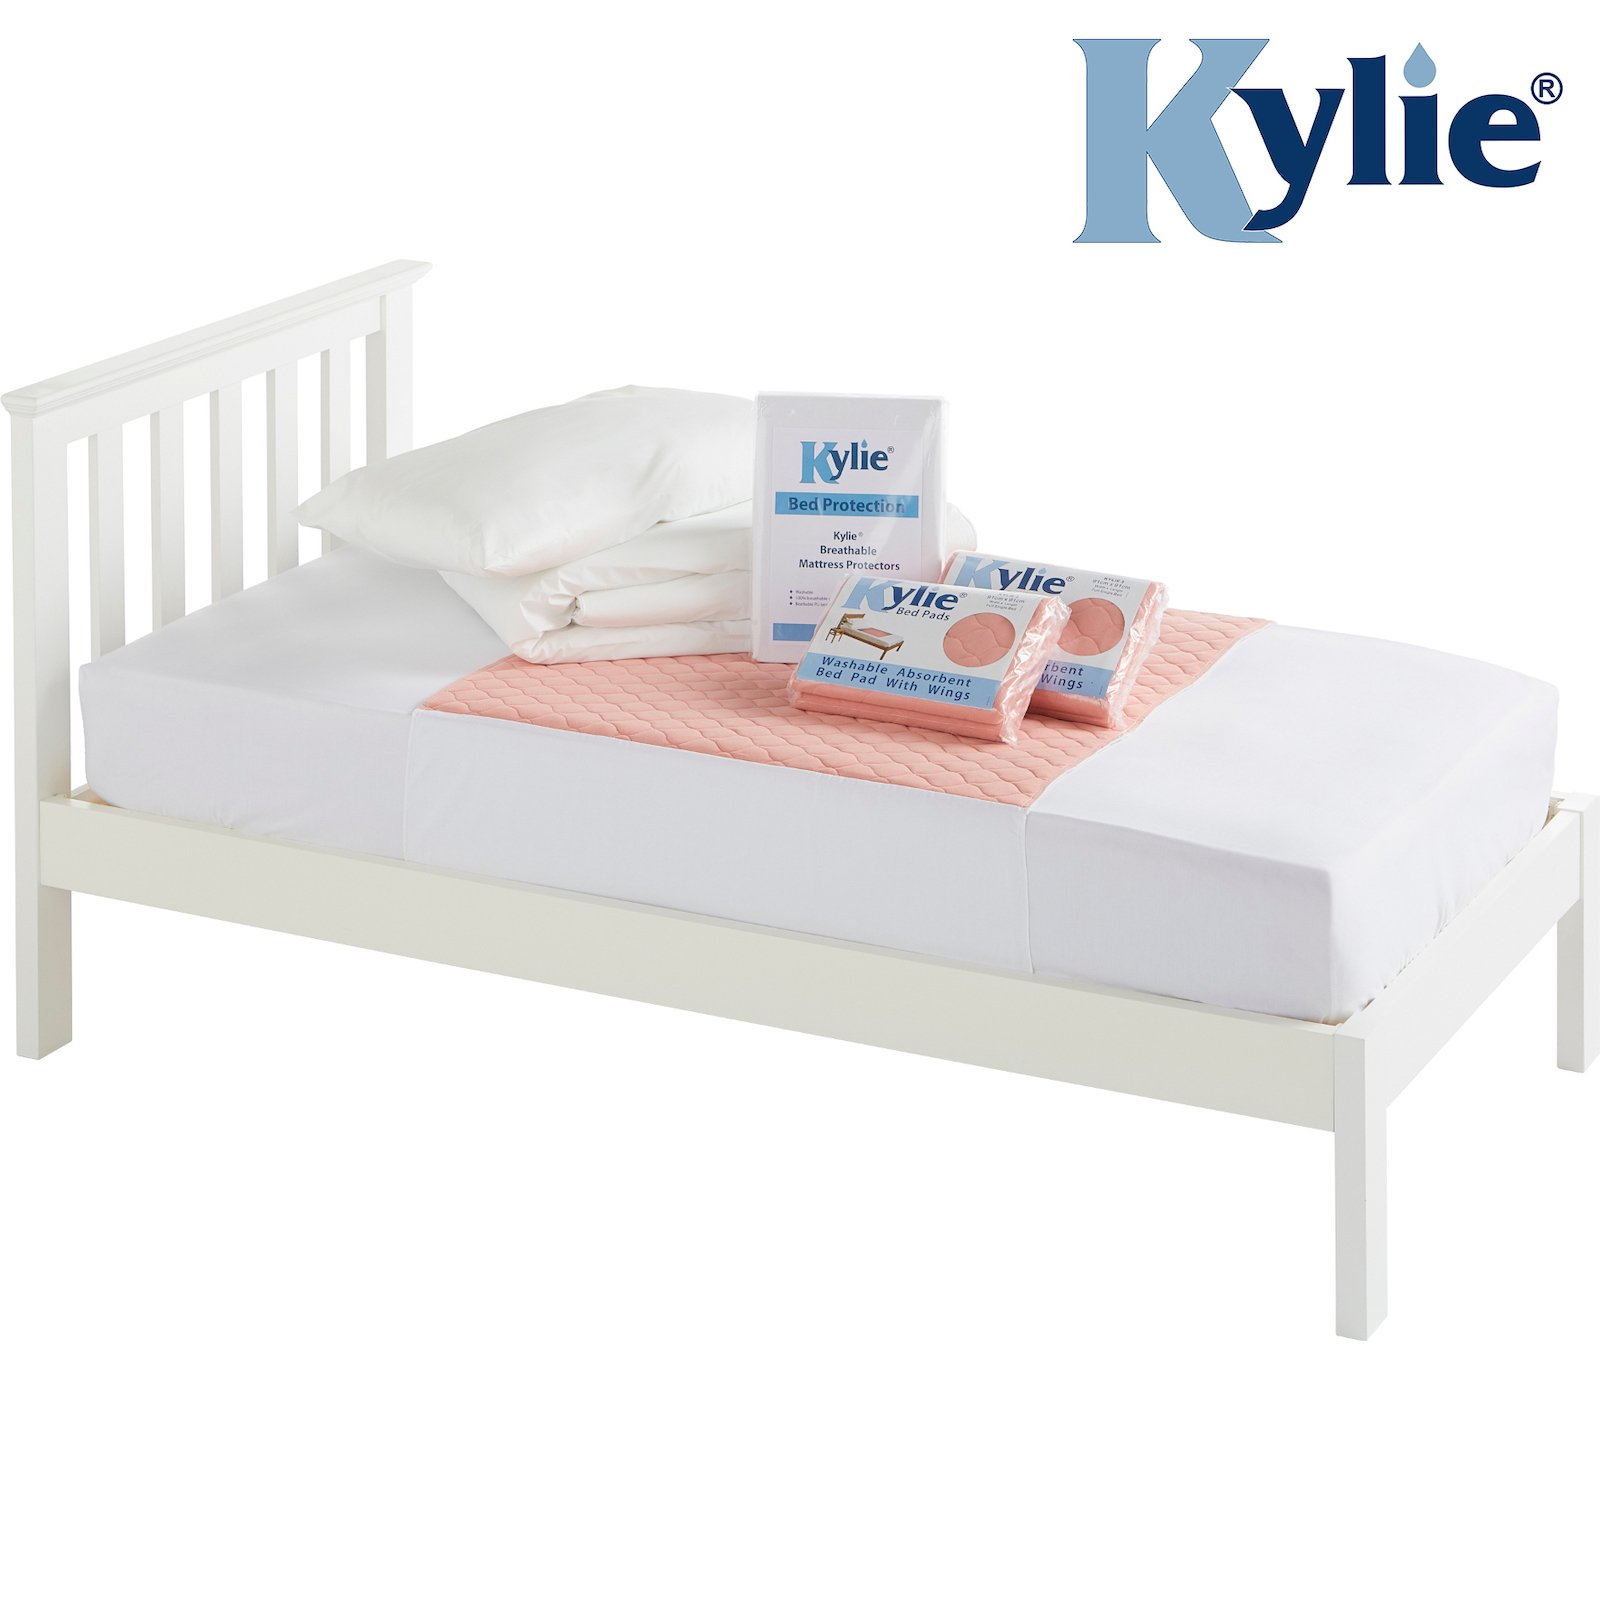 Double Bed Bundle